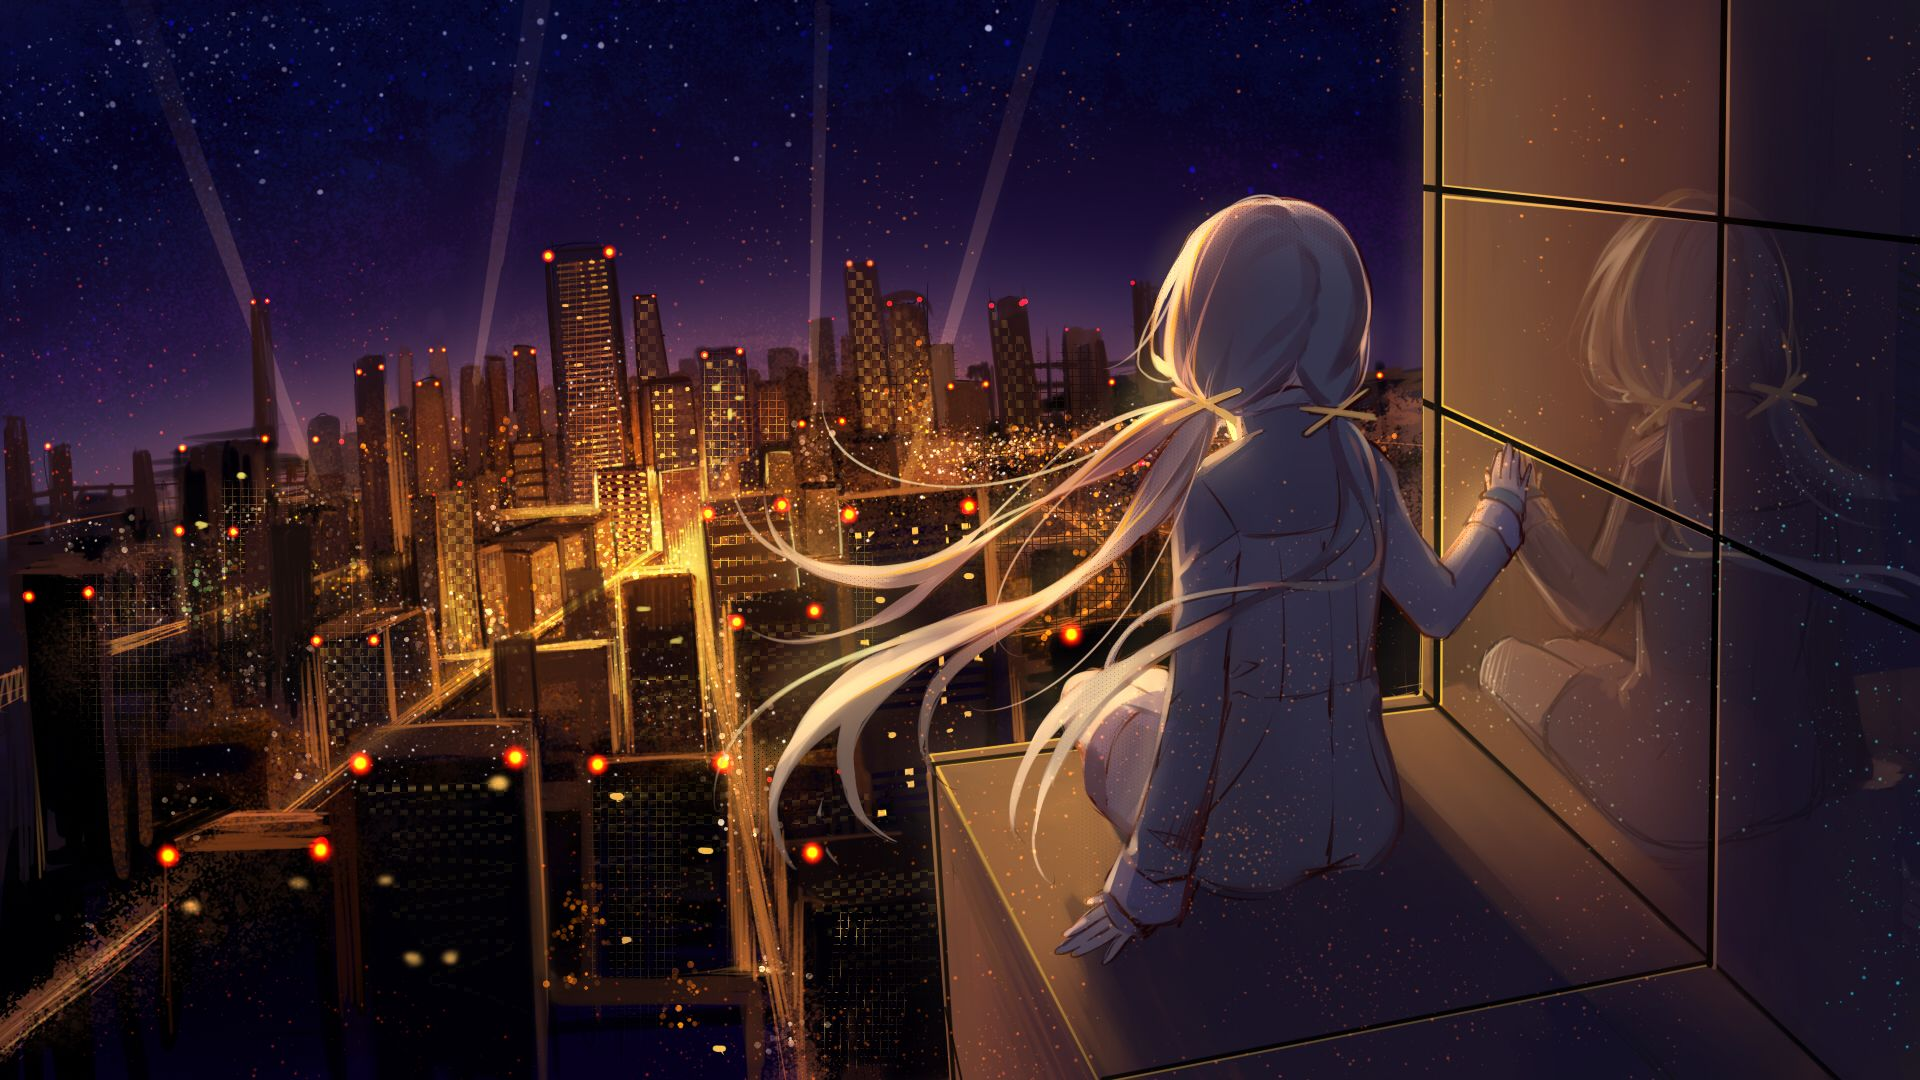 Sitting City City Lights Reflection Night Stars Anime Girls Anime Night Sky W In 2020 Anime Wallpaper Download Hd Anime Wallpapers Scenery Wallpaper